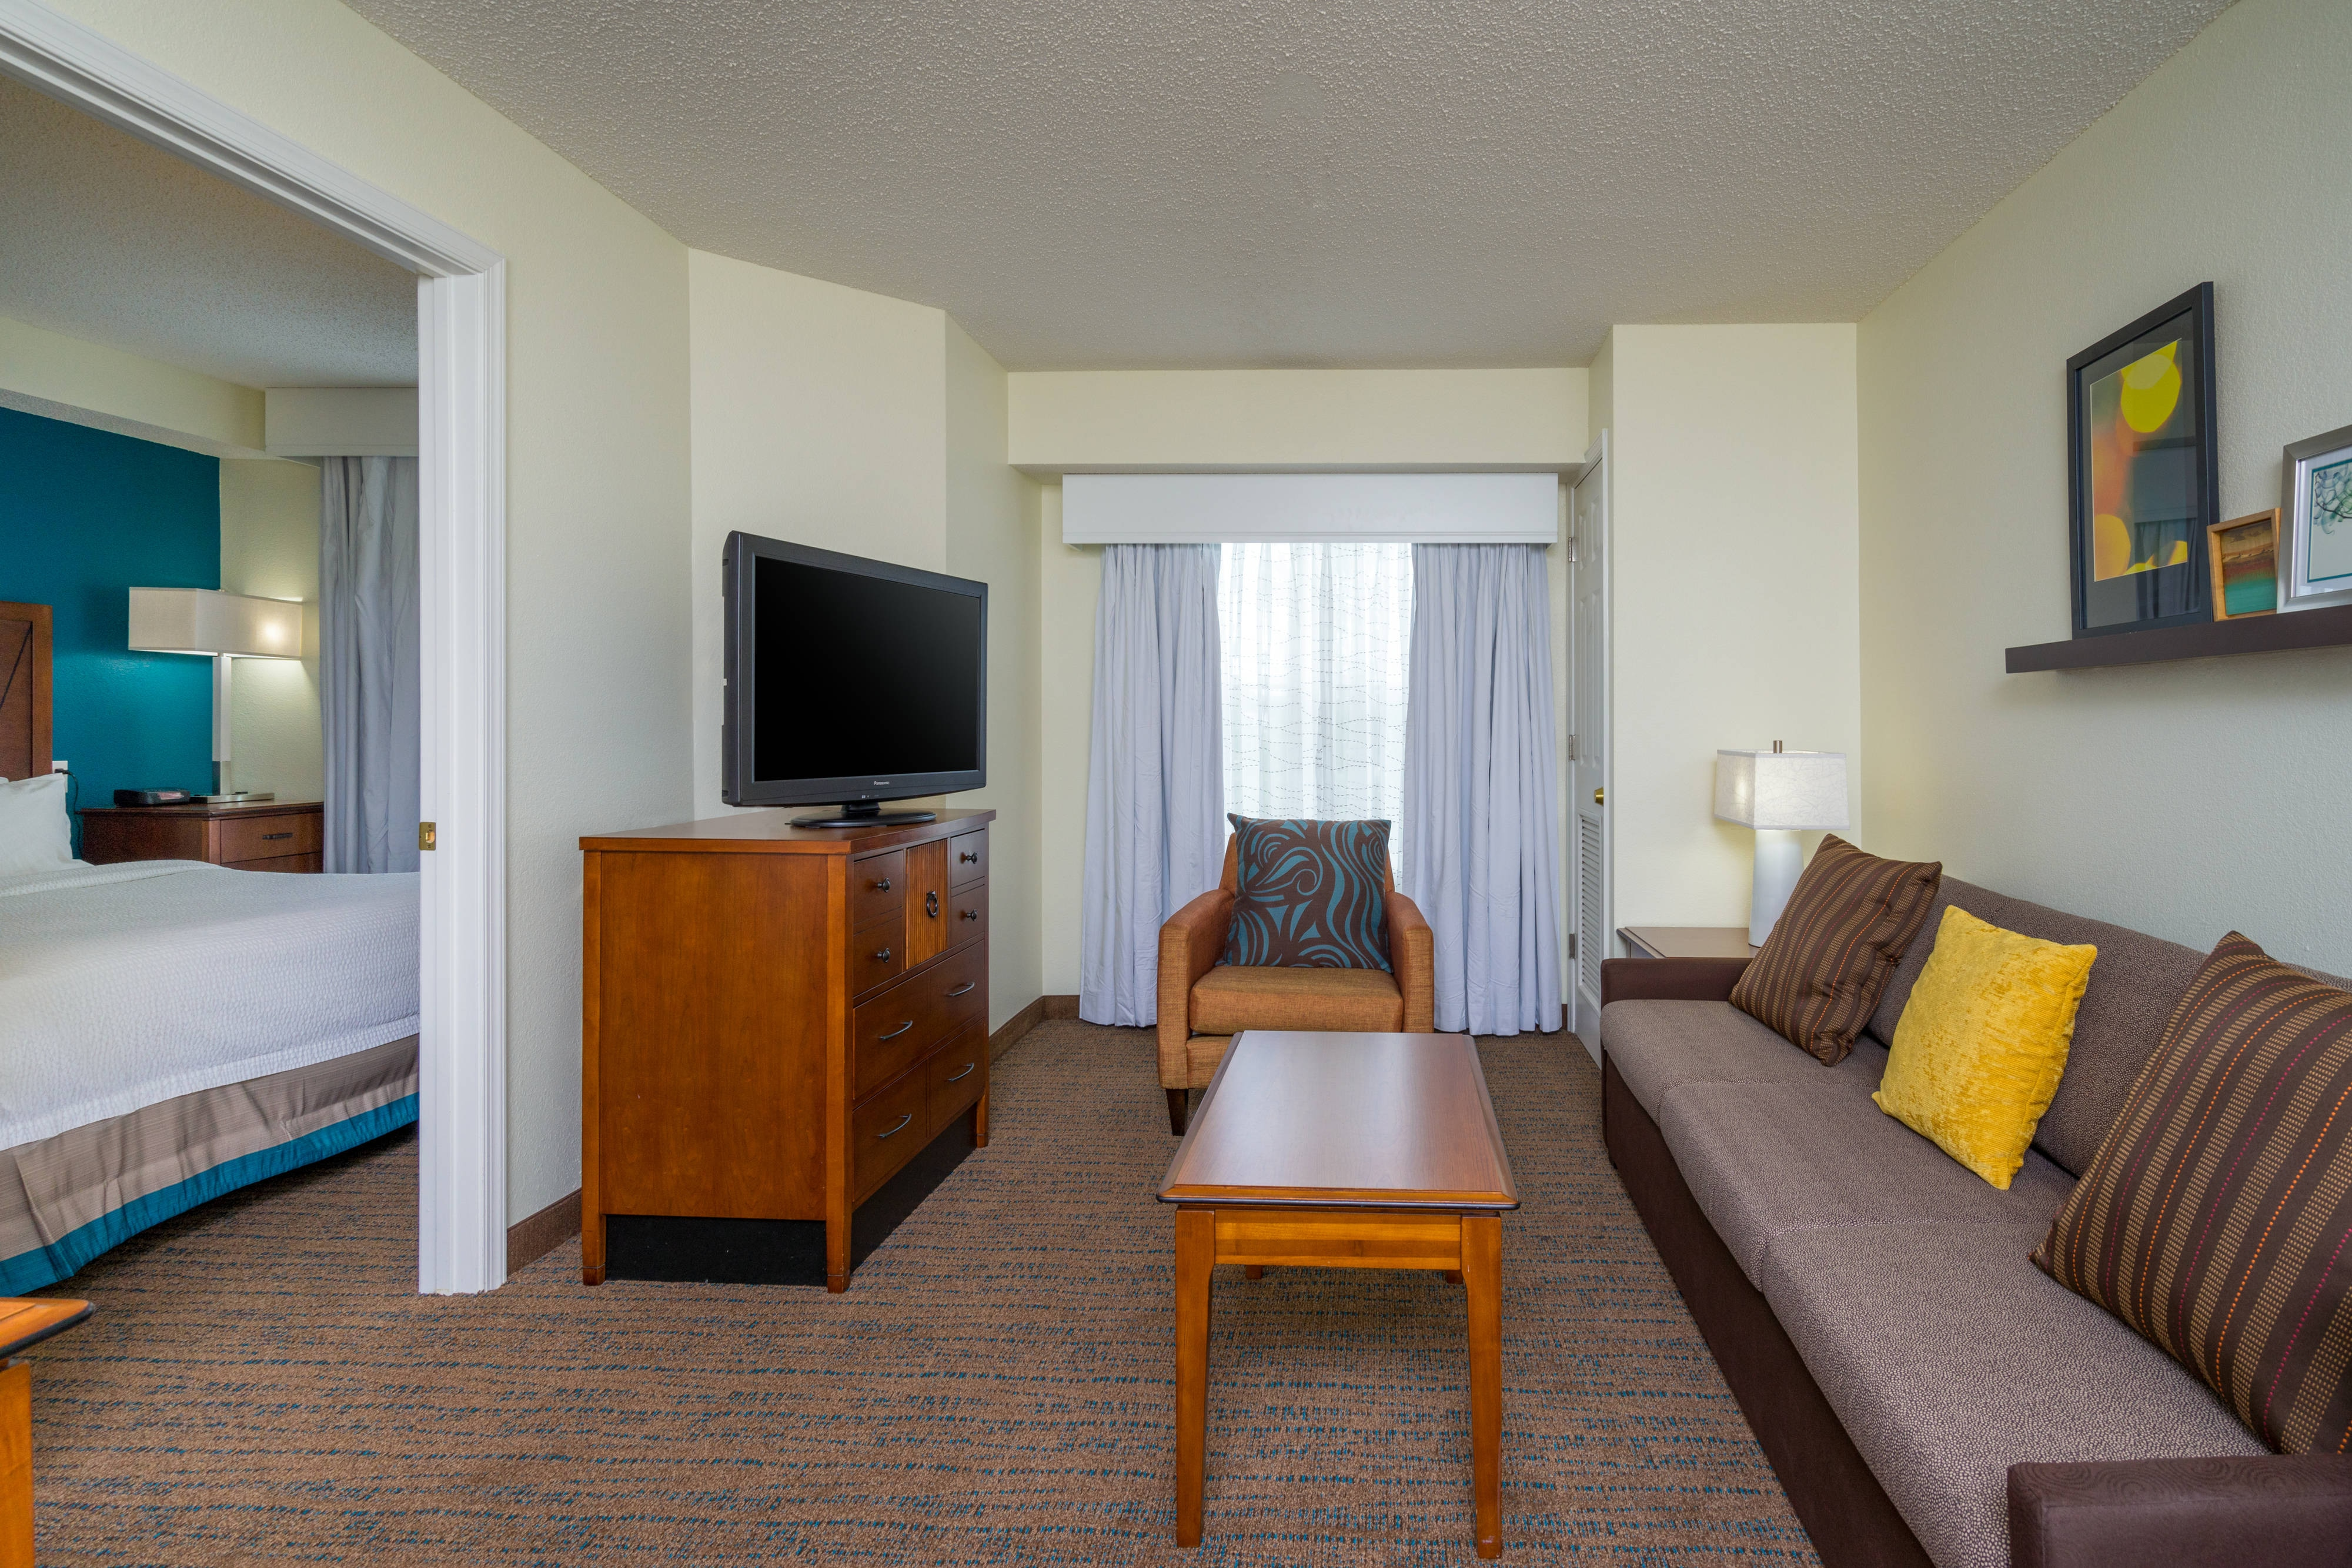 orleans inn suite suites south hotels homewood residence hor bhmhm rooms clsc birmingham hotel stay extended bedroom in new